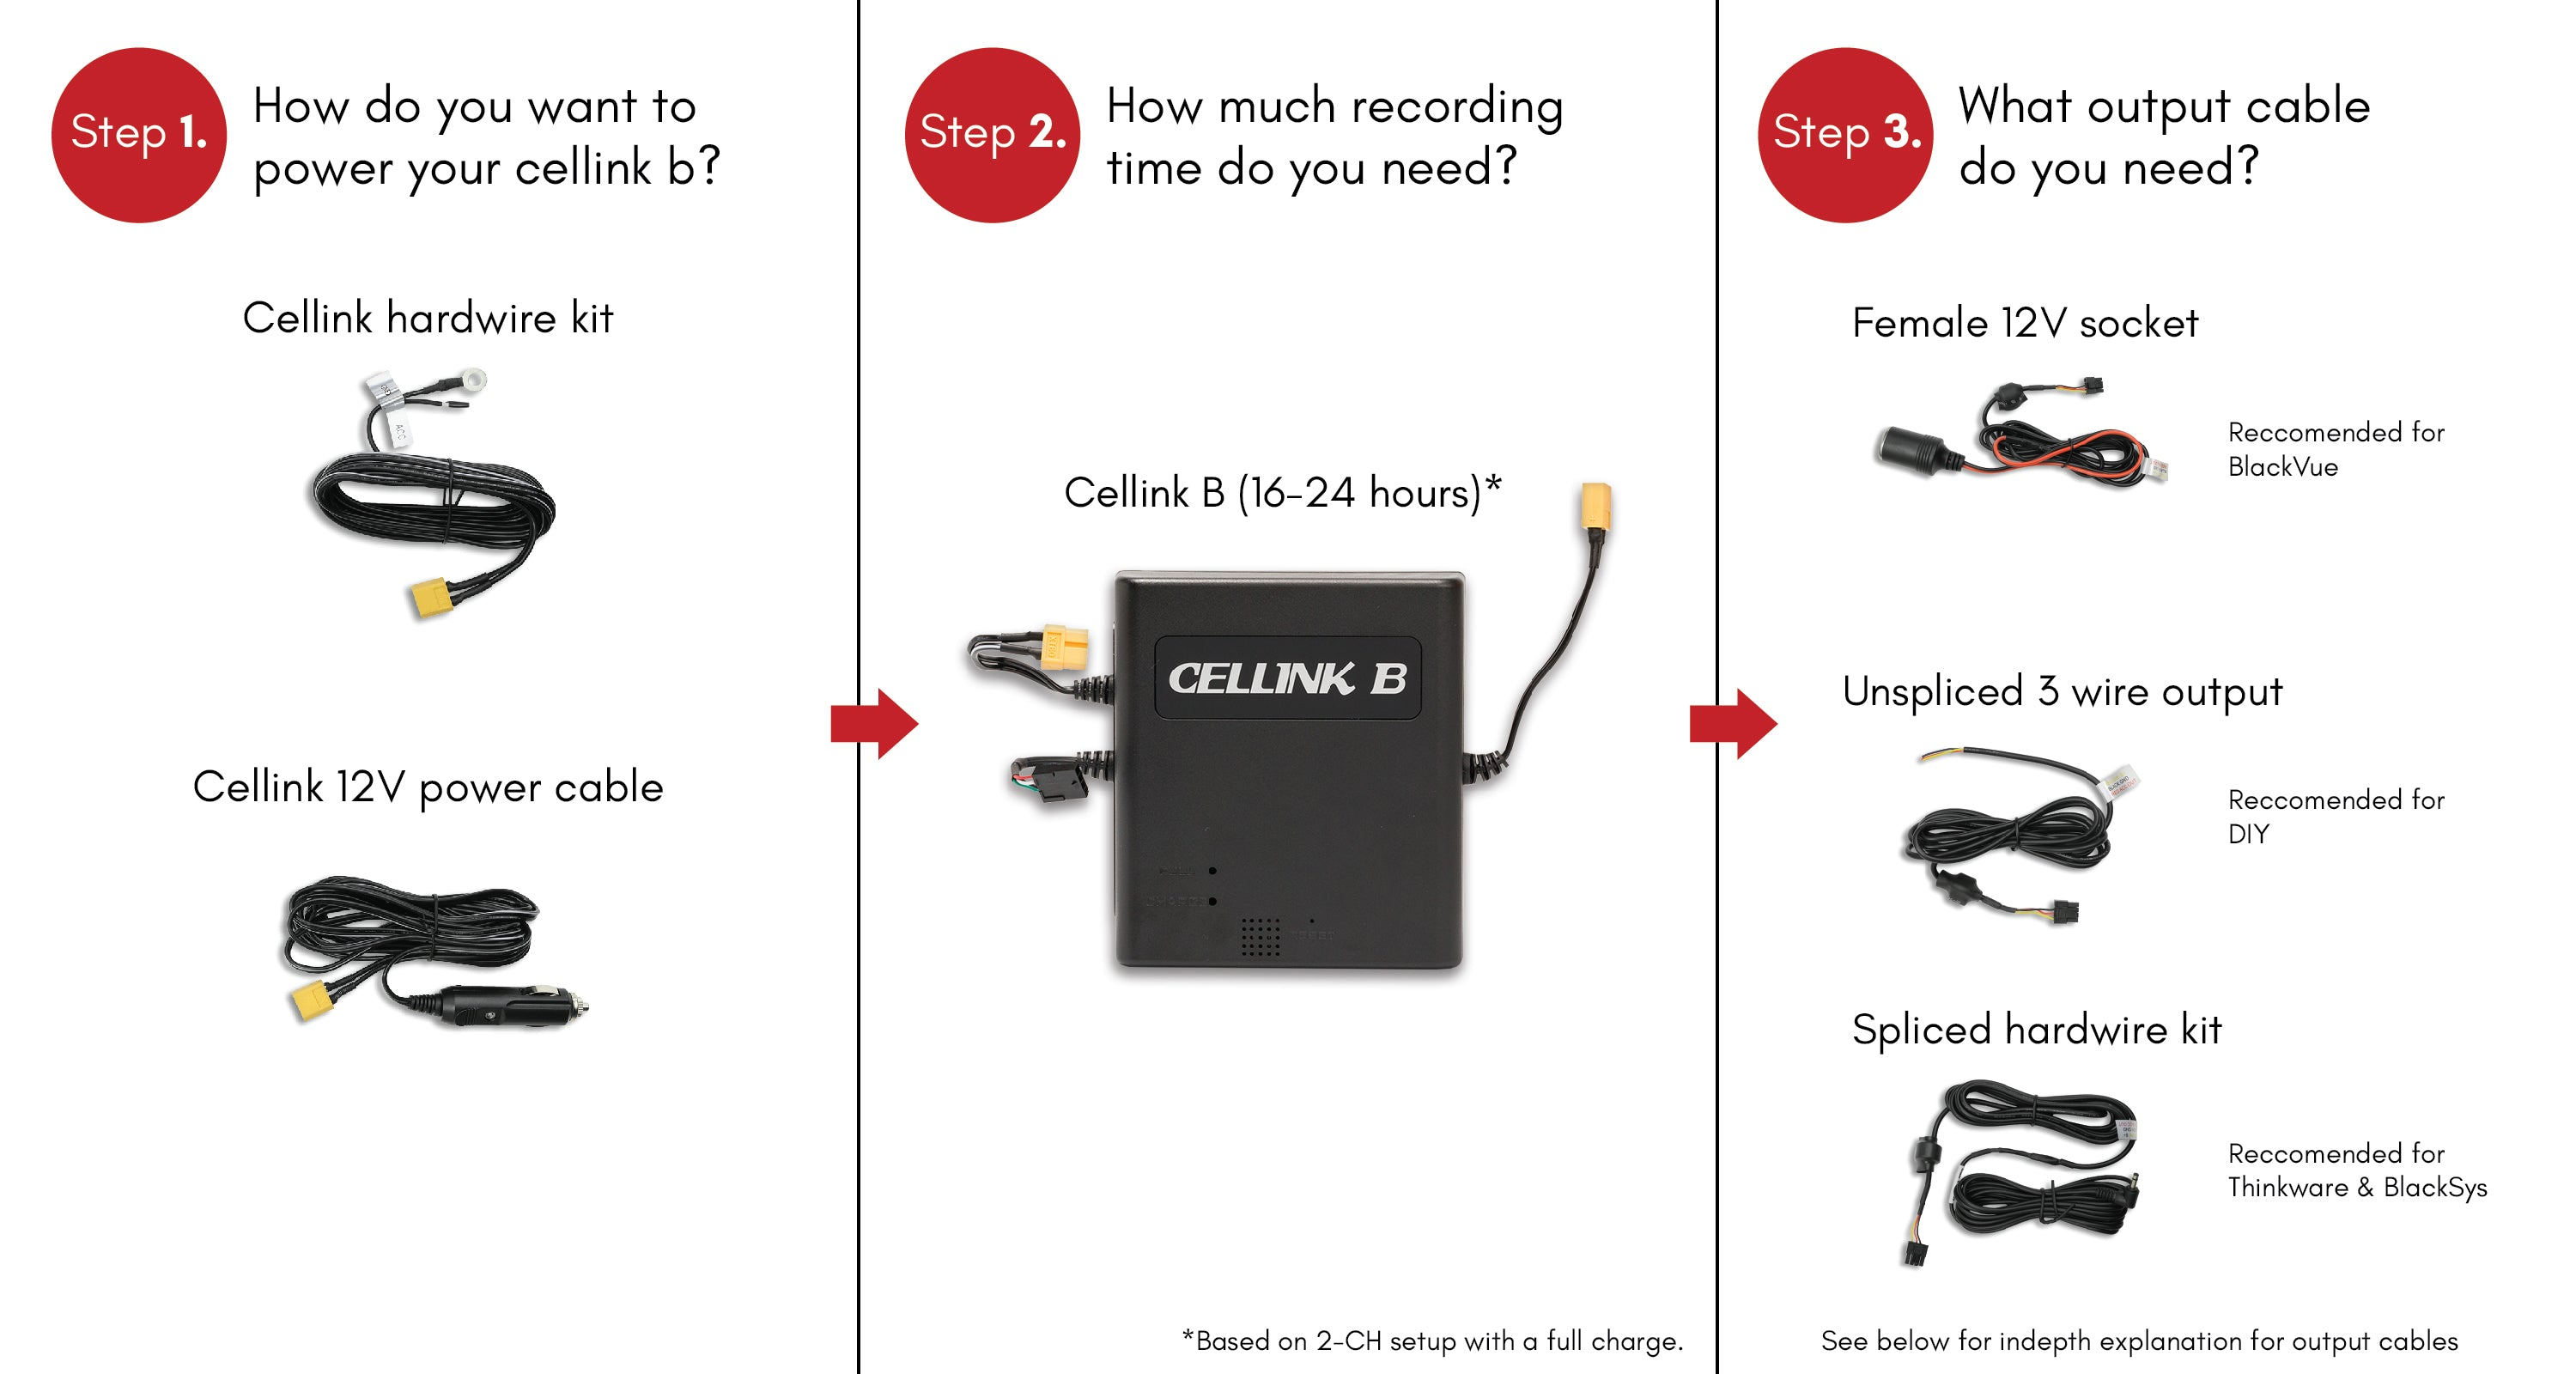 cellink battery b 2nd generation manual